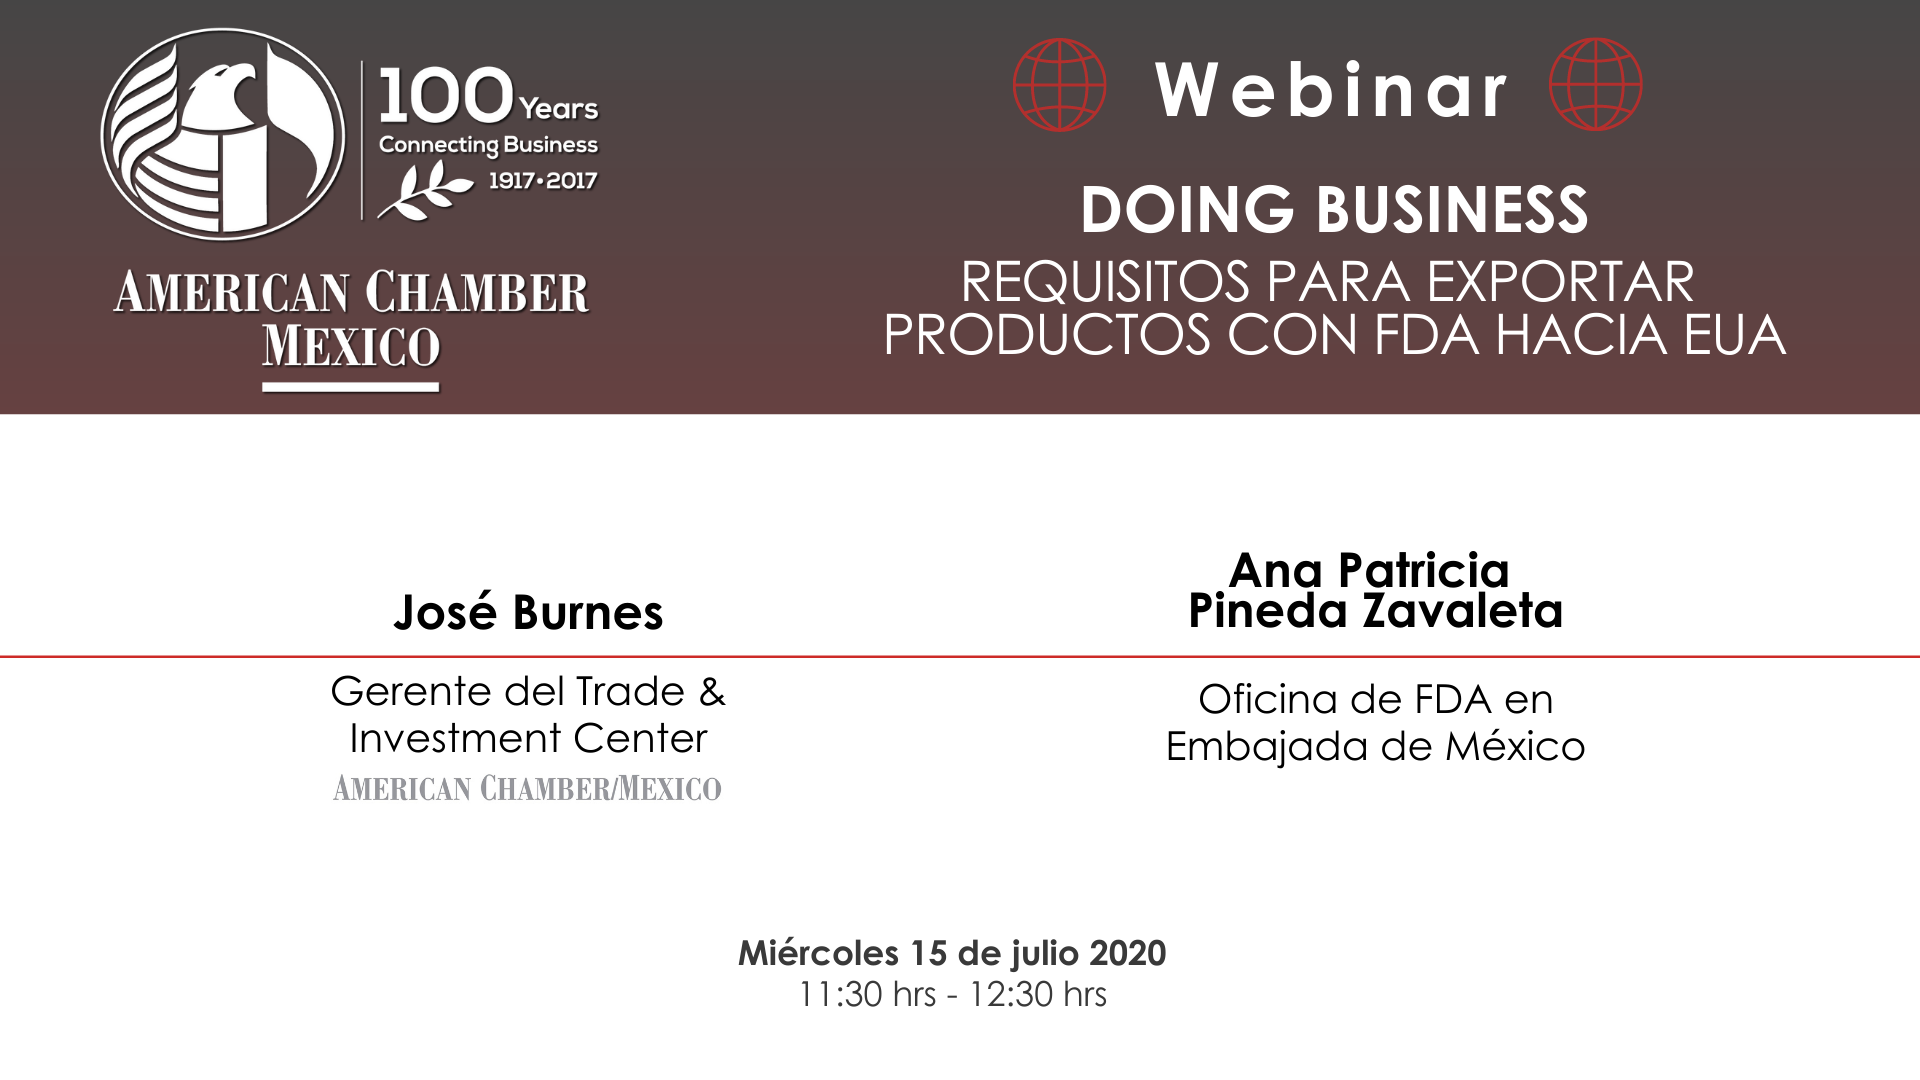 MTY WEBINAR - Doing Business: Requisitos para exportar productos con FDA hacia EUA